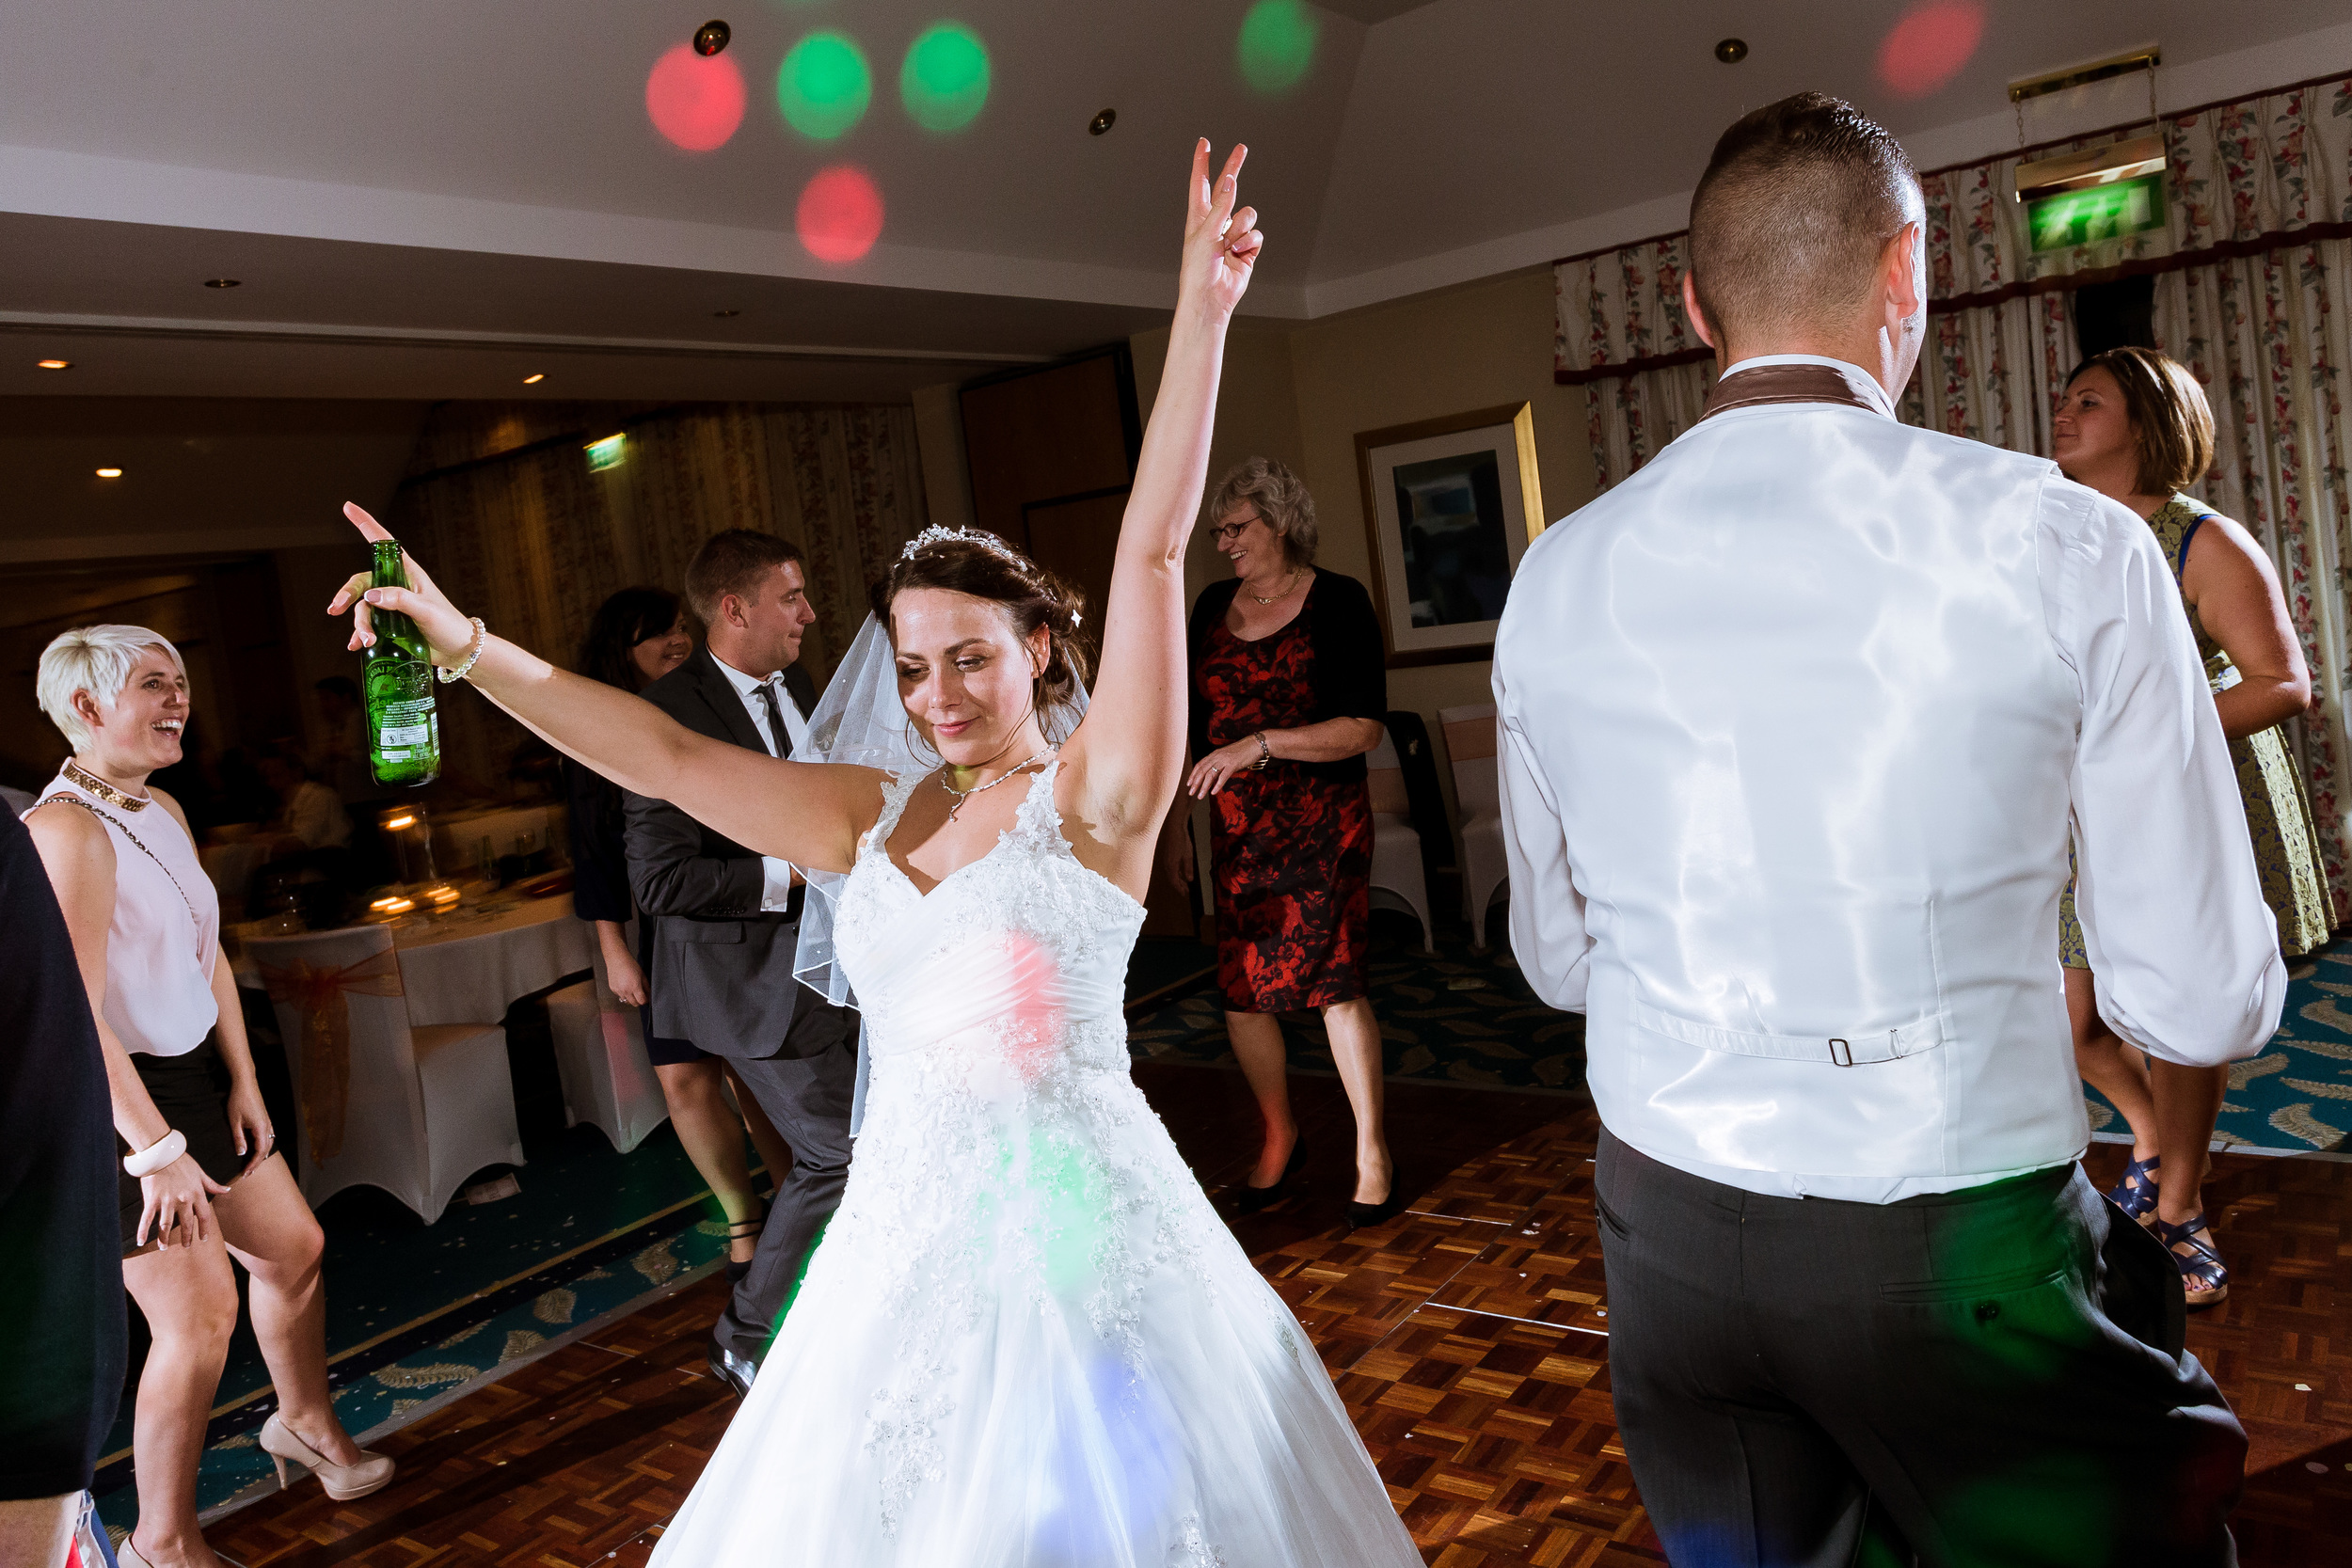 She continues to celebrate their wedding as the night goes on, with her hands in the air the party never stoops